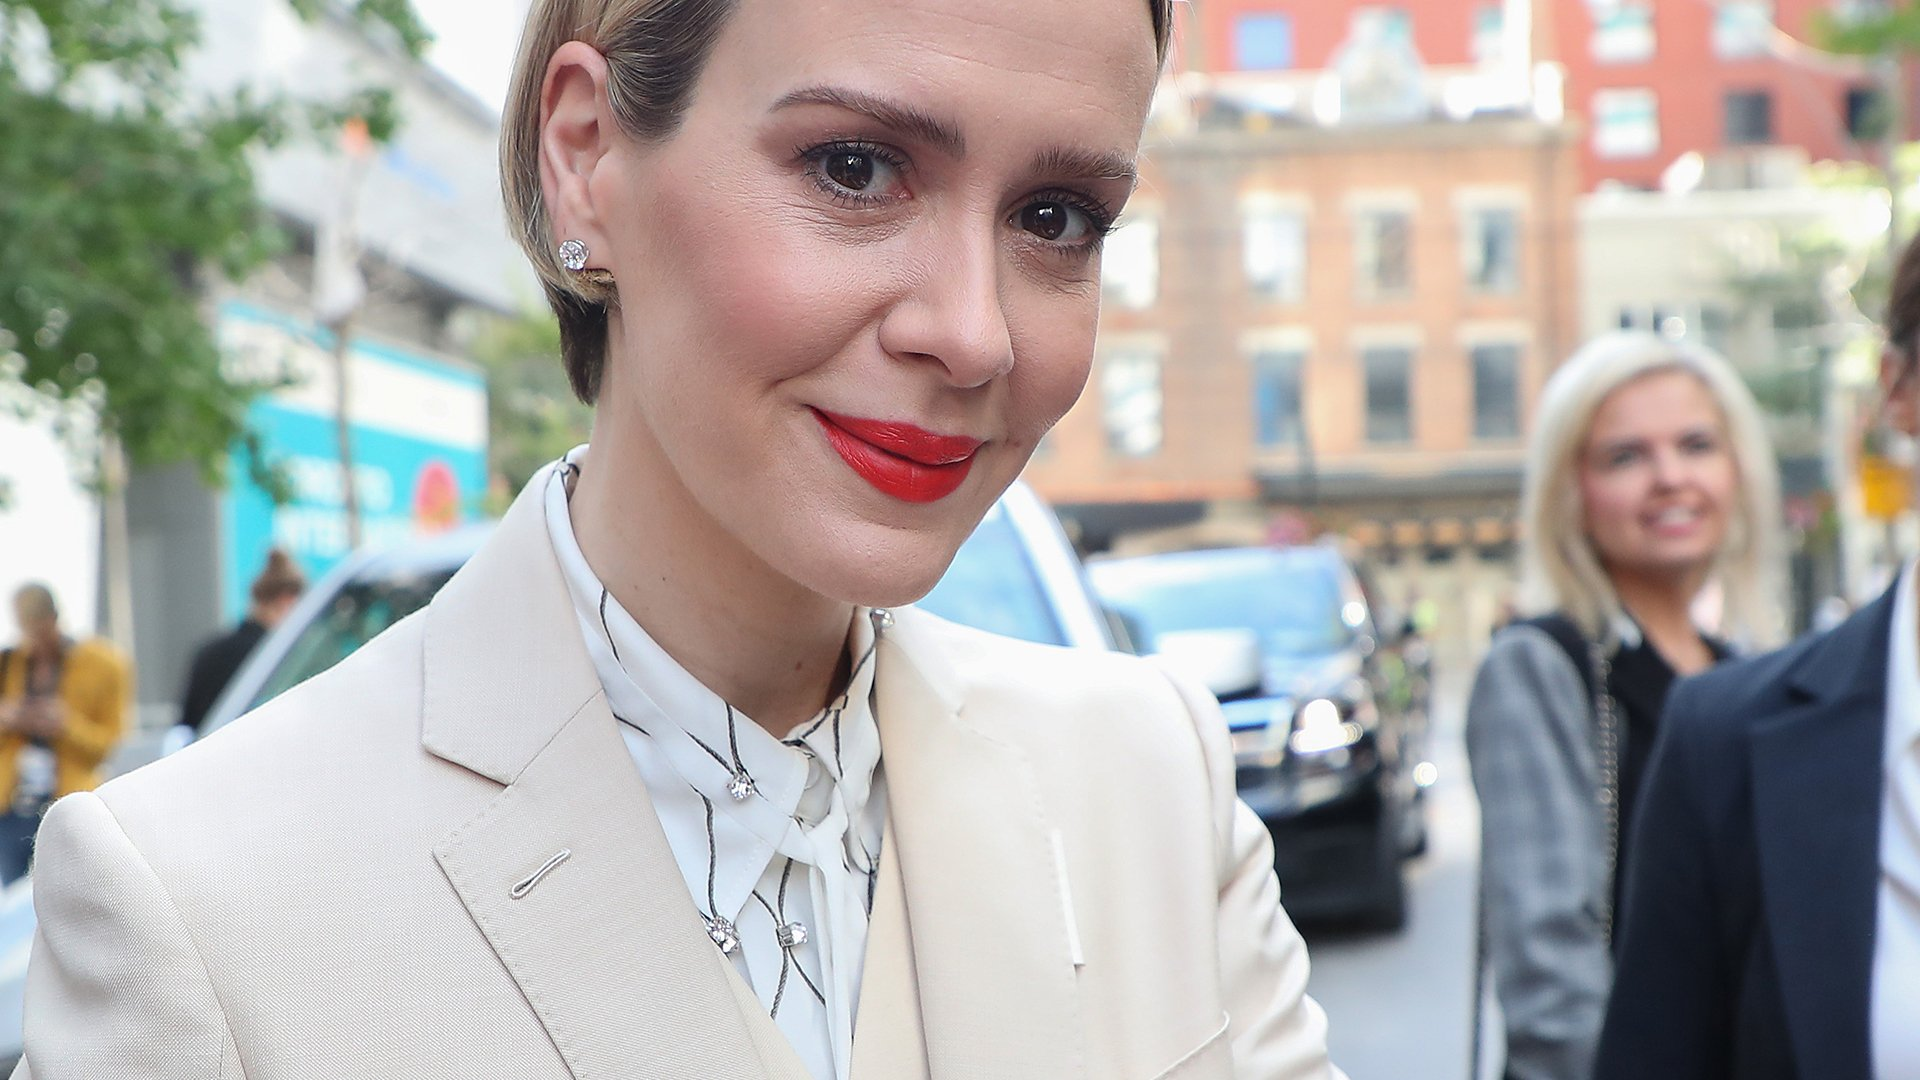 Why We Won't See Much of Sarah Paulson in 'American Horror